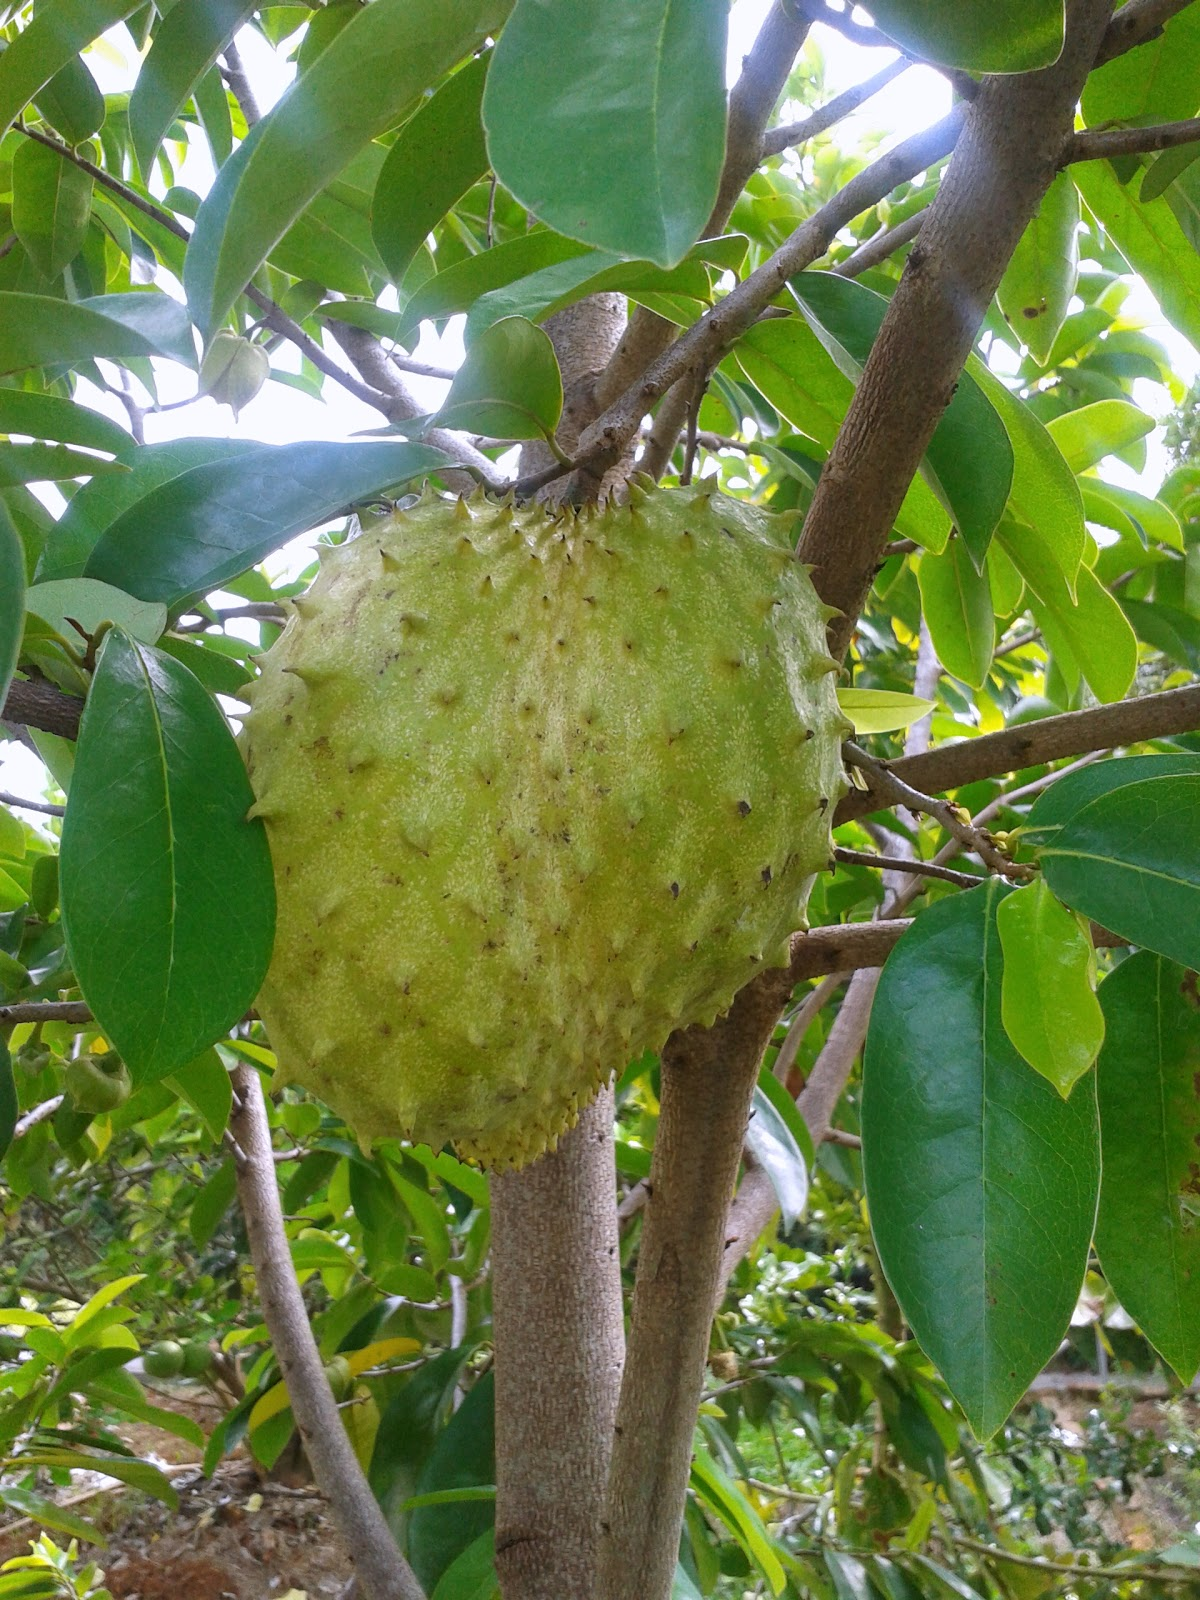 Unveiled Jobless Money Tai Tai's Life: HARVEST OF SOUR SOP